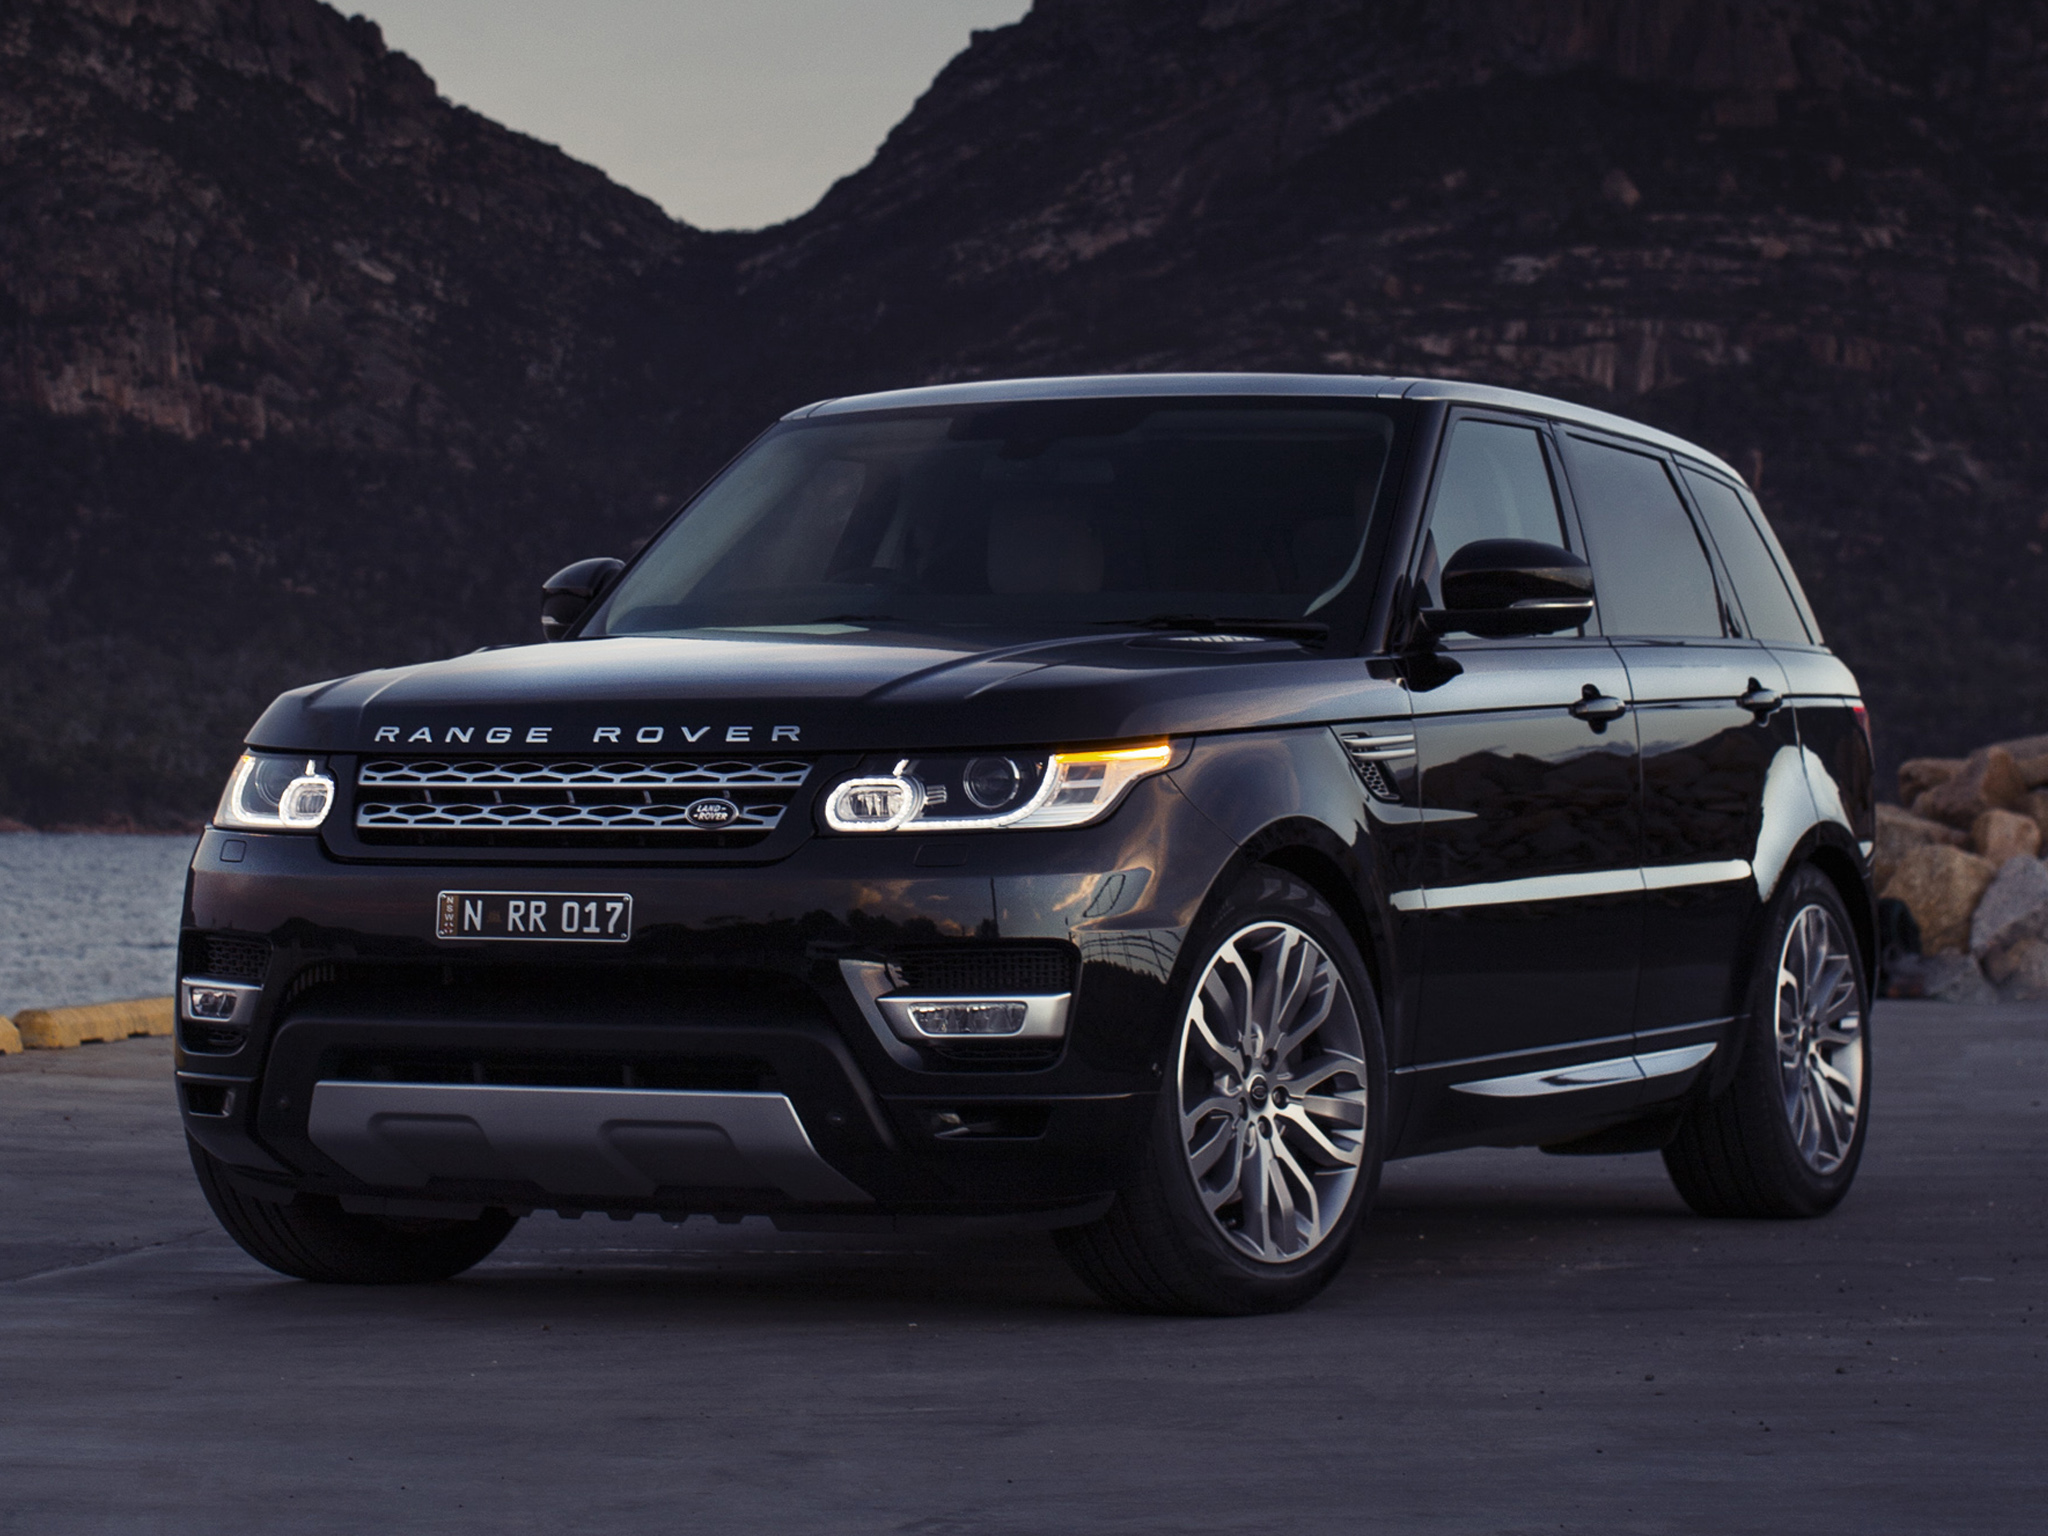 2014 range rover sport autobiography au spec suv awd luxury j wallpaper 2048x1536 171156. Black Bedroom Furniture Sets. Home Design Ideas